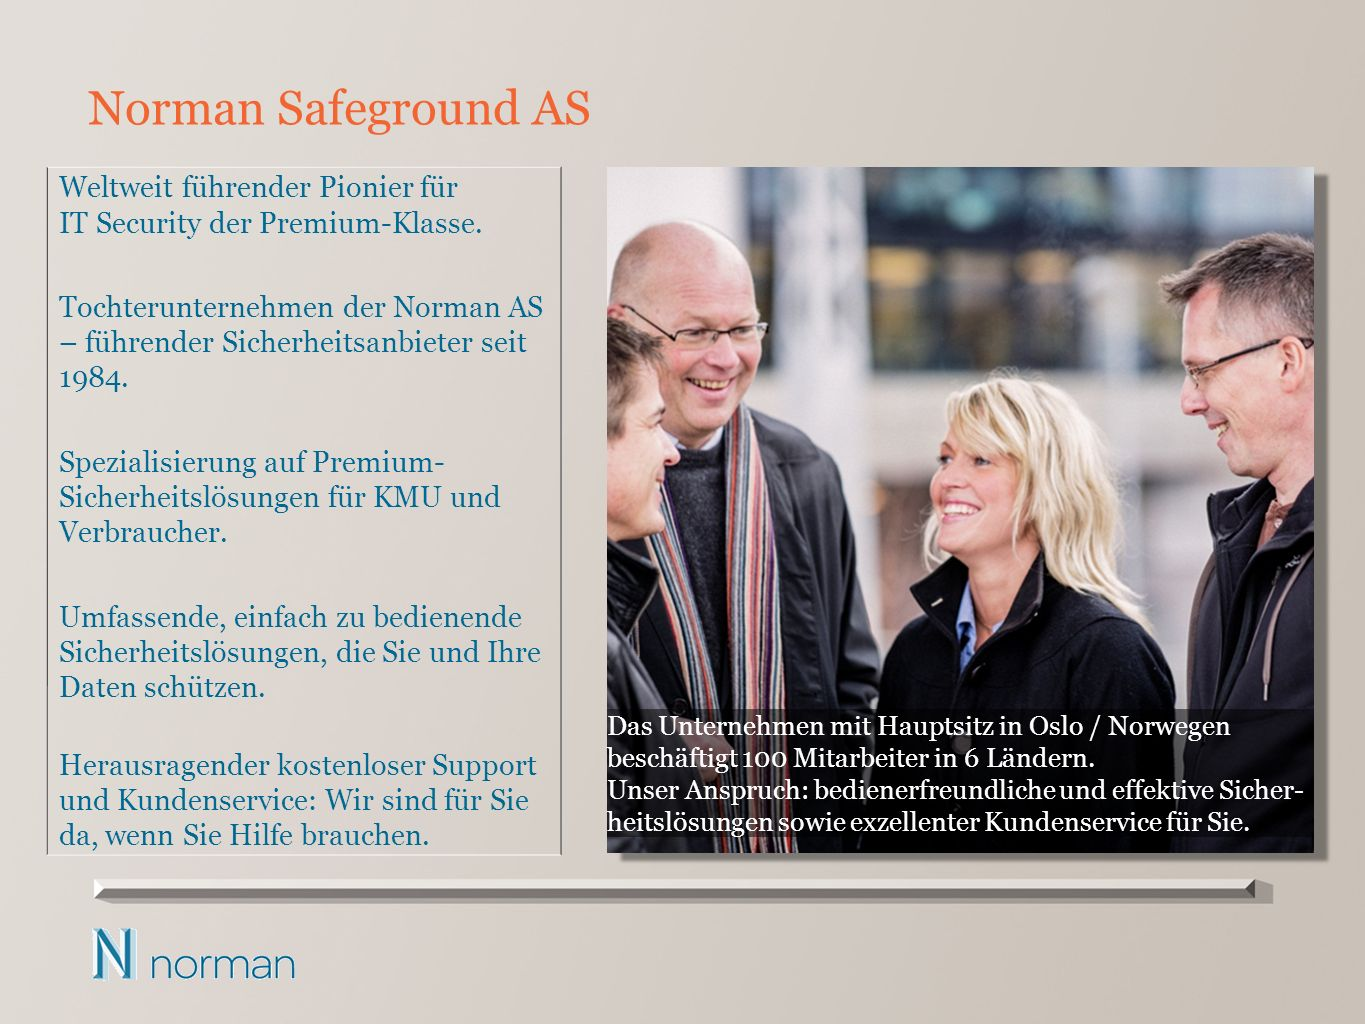 Norman Safeground AS Weltweit führender Pionier für IT Security der Premium-Klasse.